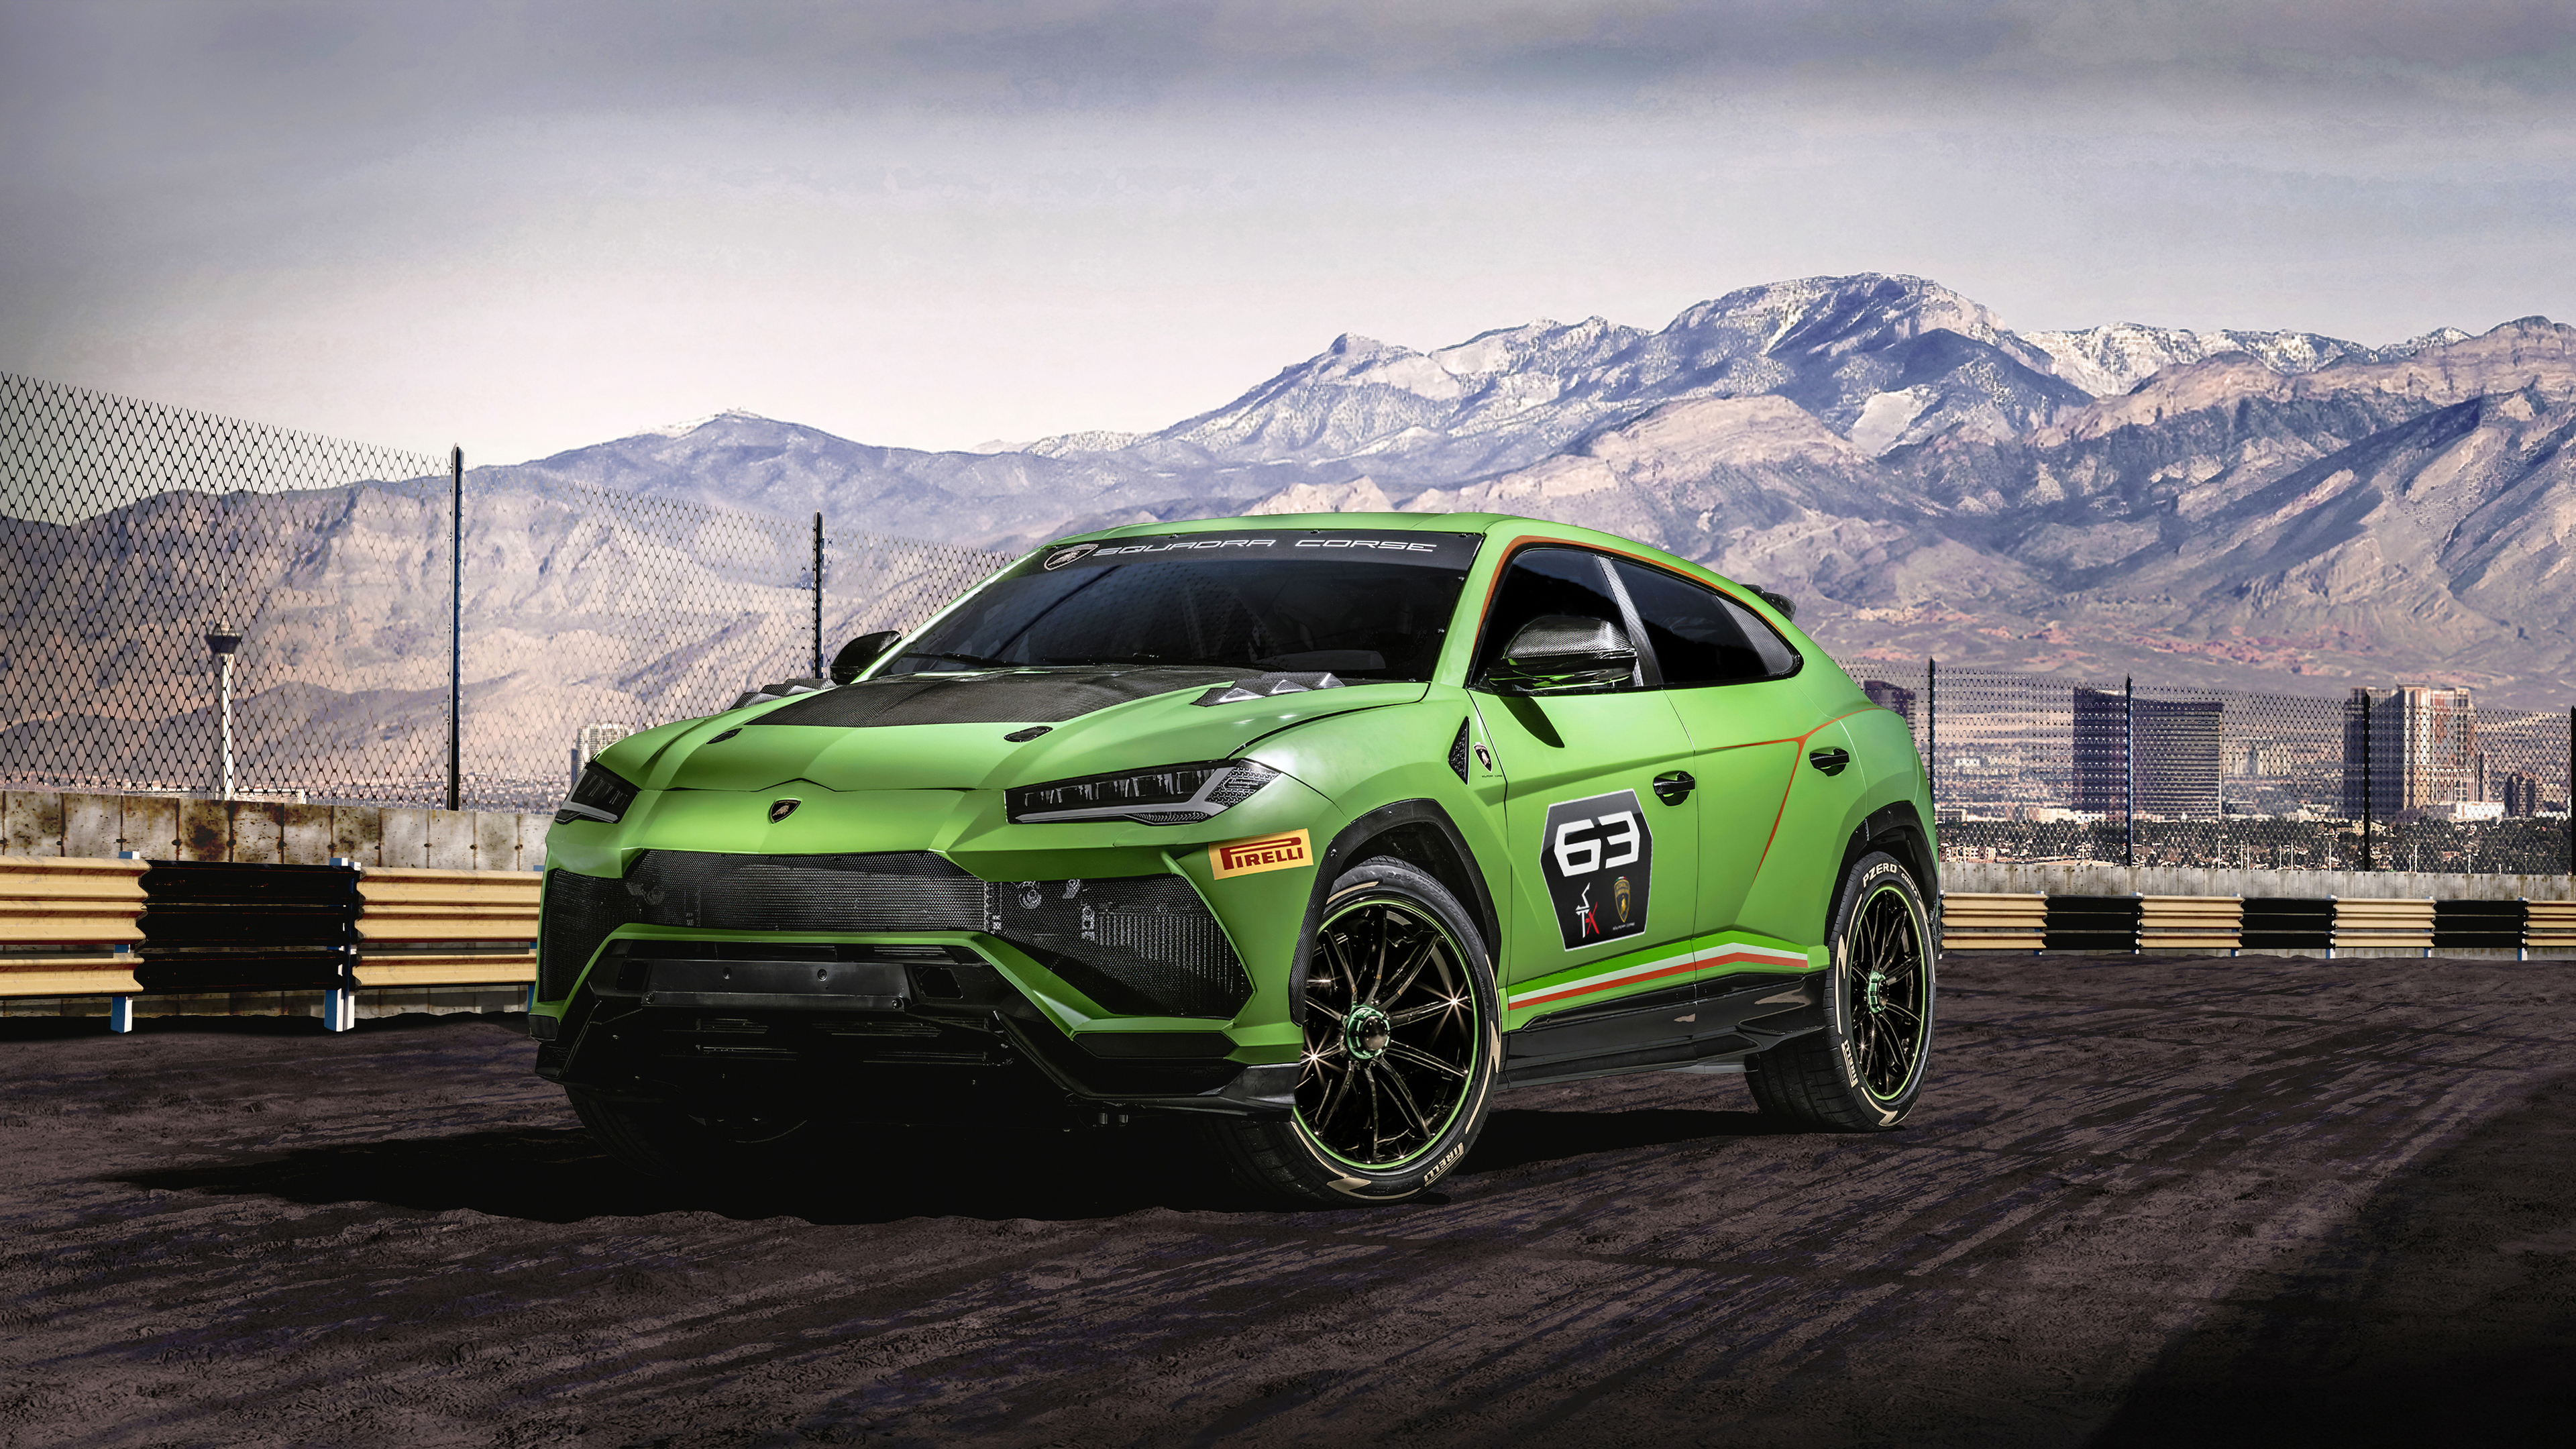 2018 lamborghini urus st x concept 4k 1546361859 - 2018 Lamborghini Urus ST X Concept 4k - suv wallpapers, lamborghini wallpapers, lamborghini urus wallpapers, lamborghini urus st x wallpapers, hd-wallpapers, cars wallpapers, 4k-wallpapers, 2018 cars wallpapers